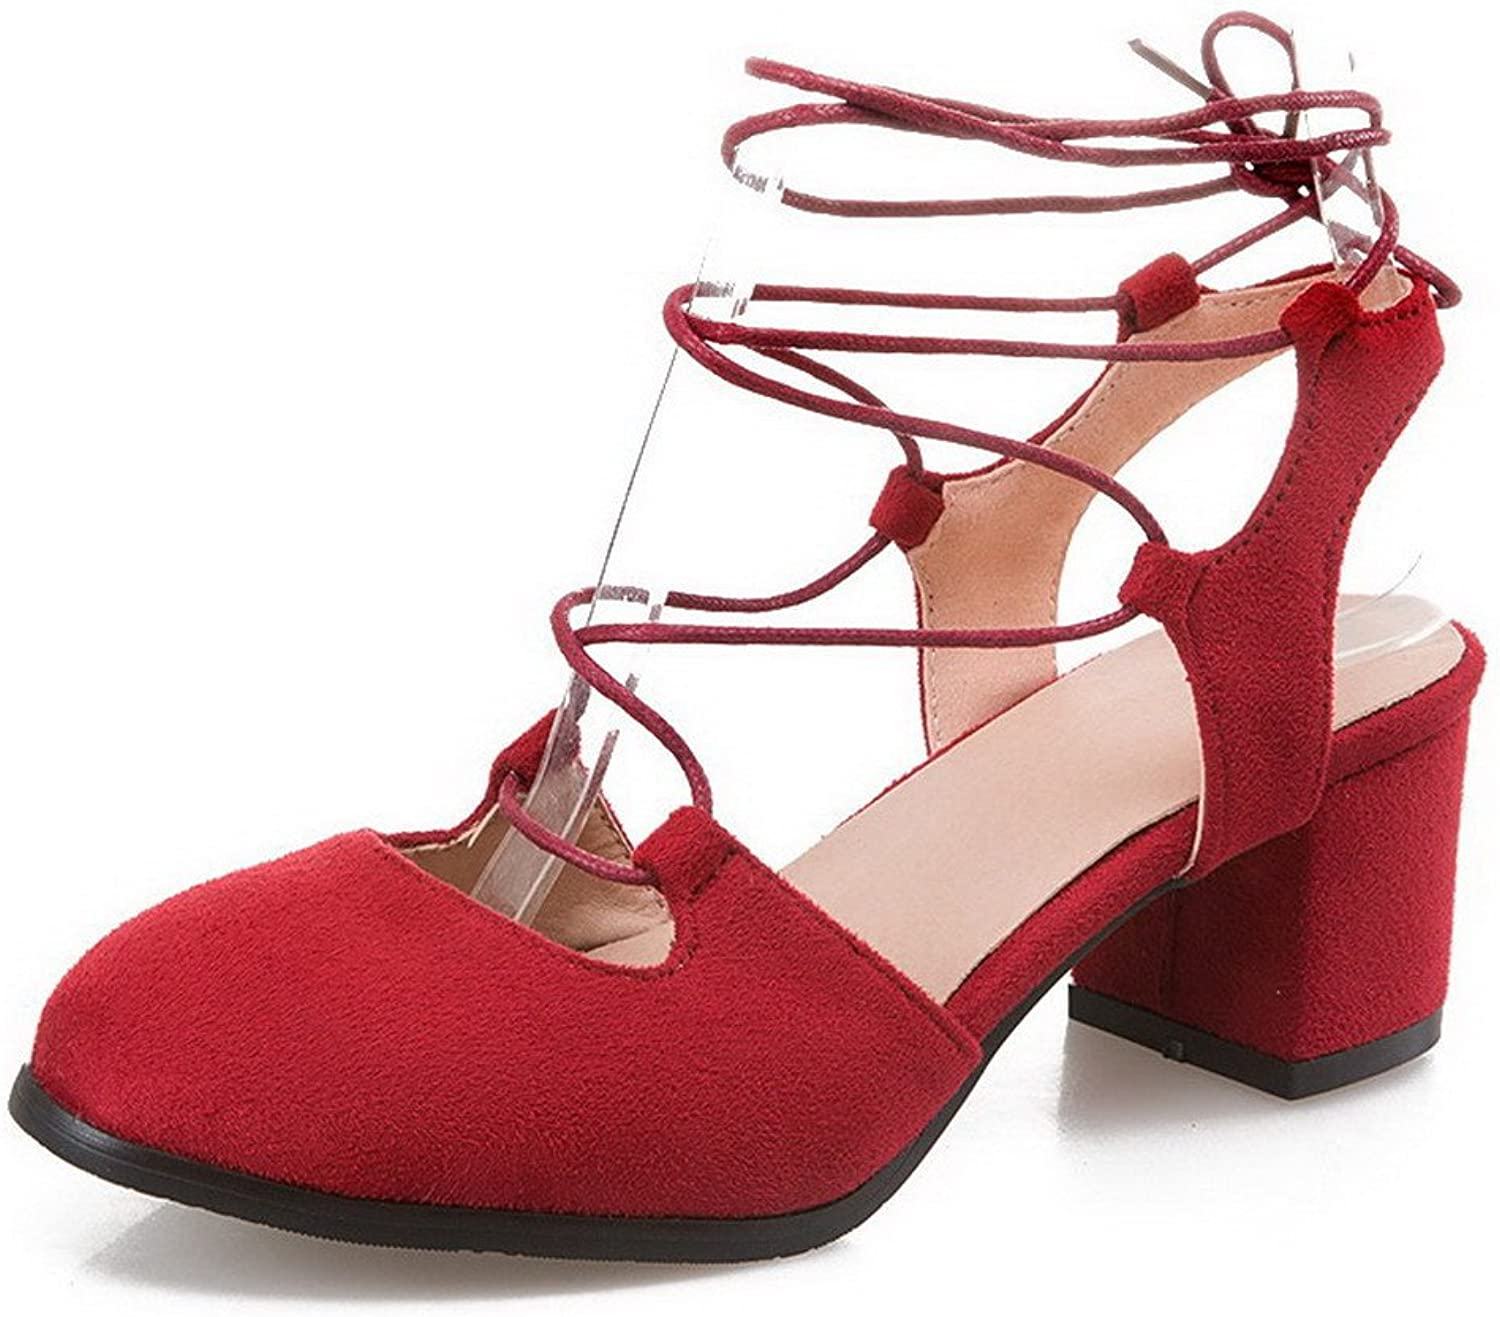 WeenFashion Women's Lace-up Kitten-Heels Frosted Solid Round-Toe Pumps-shoes